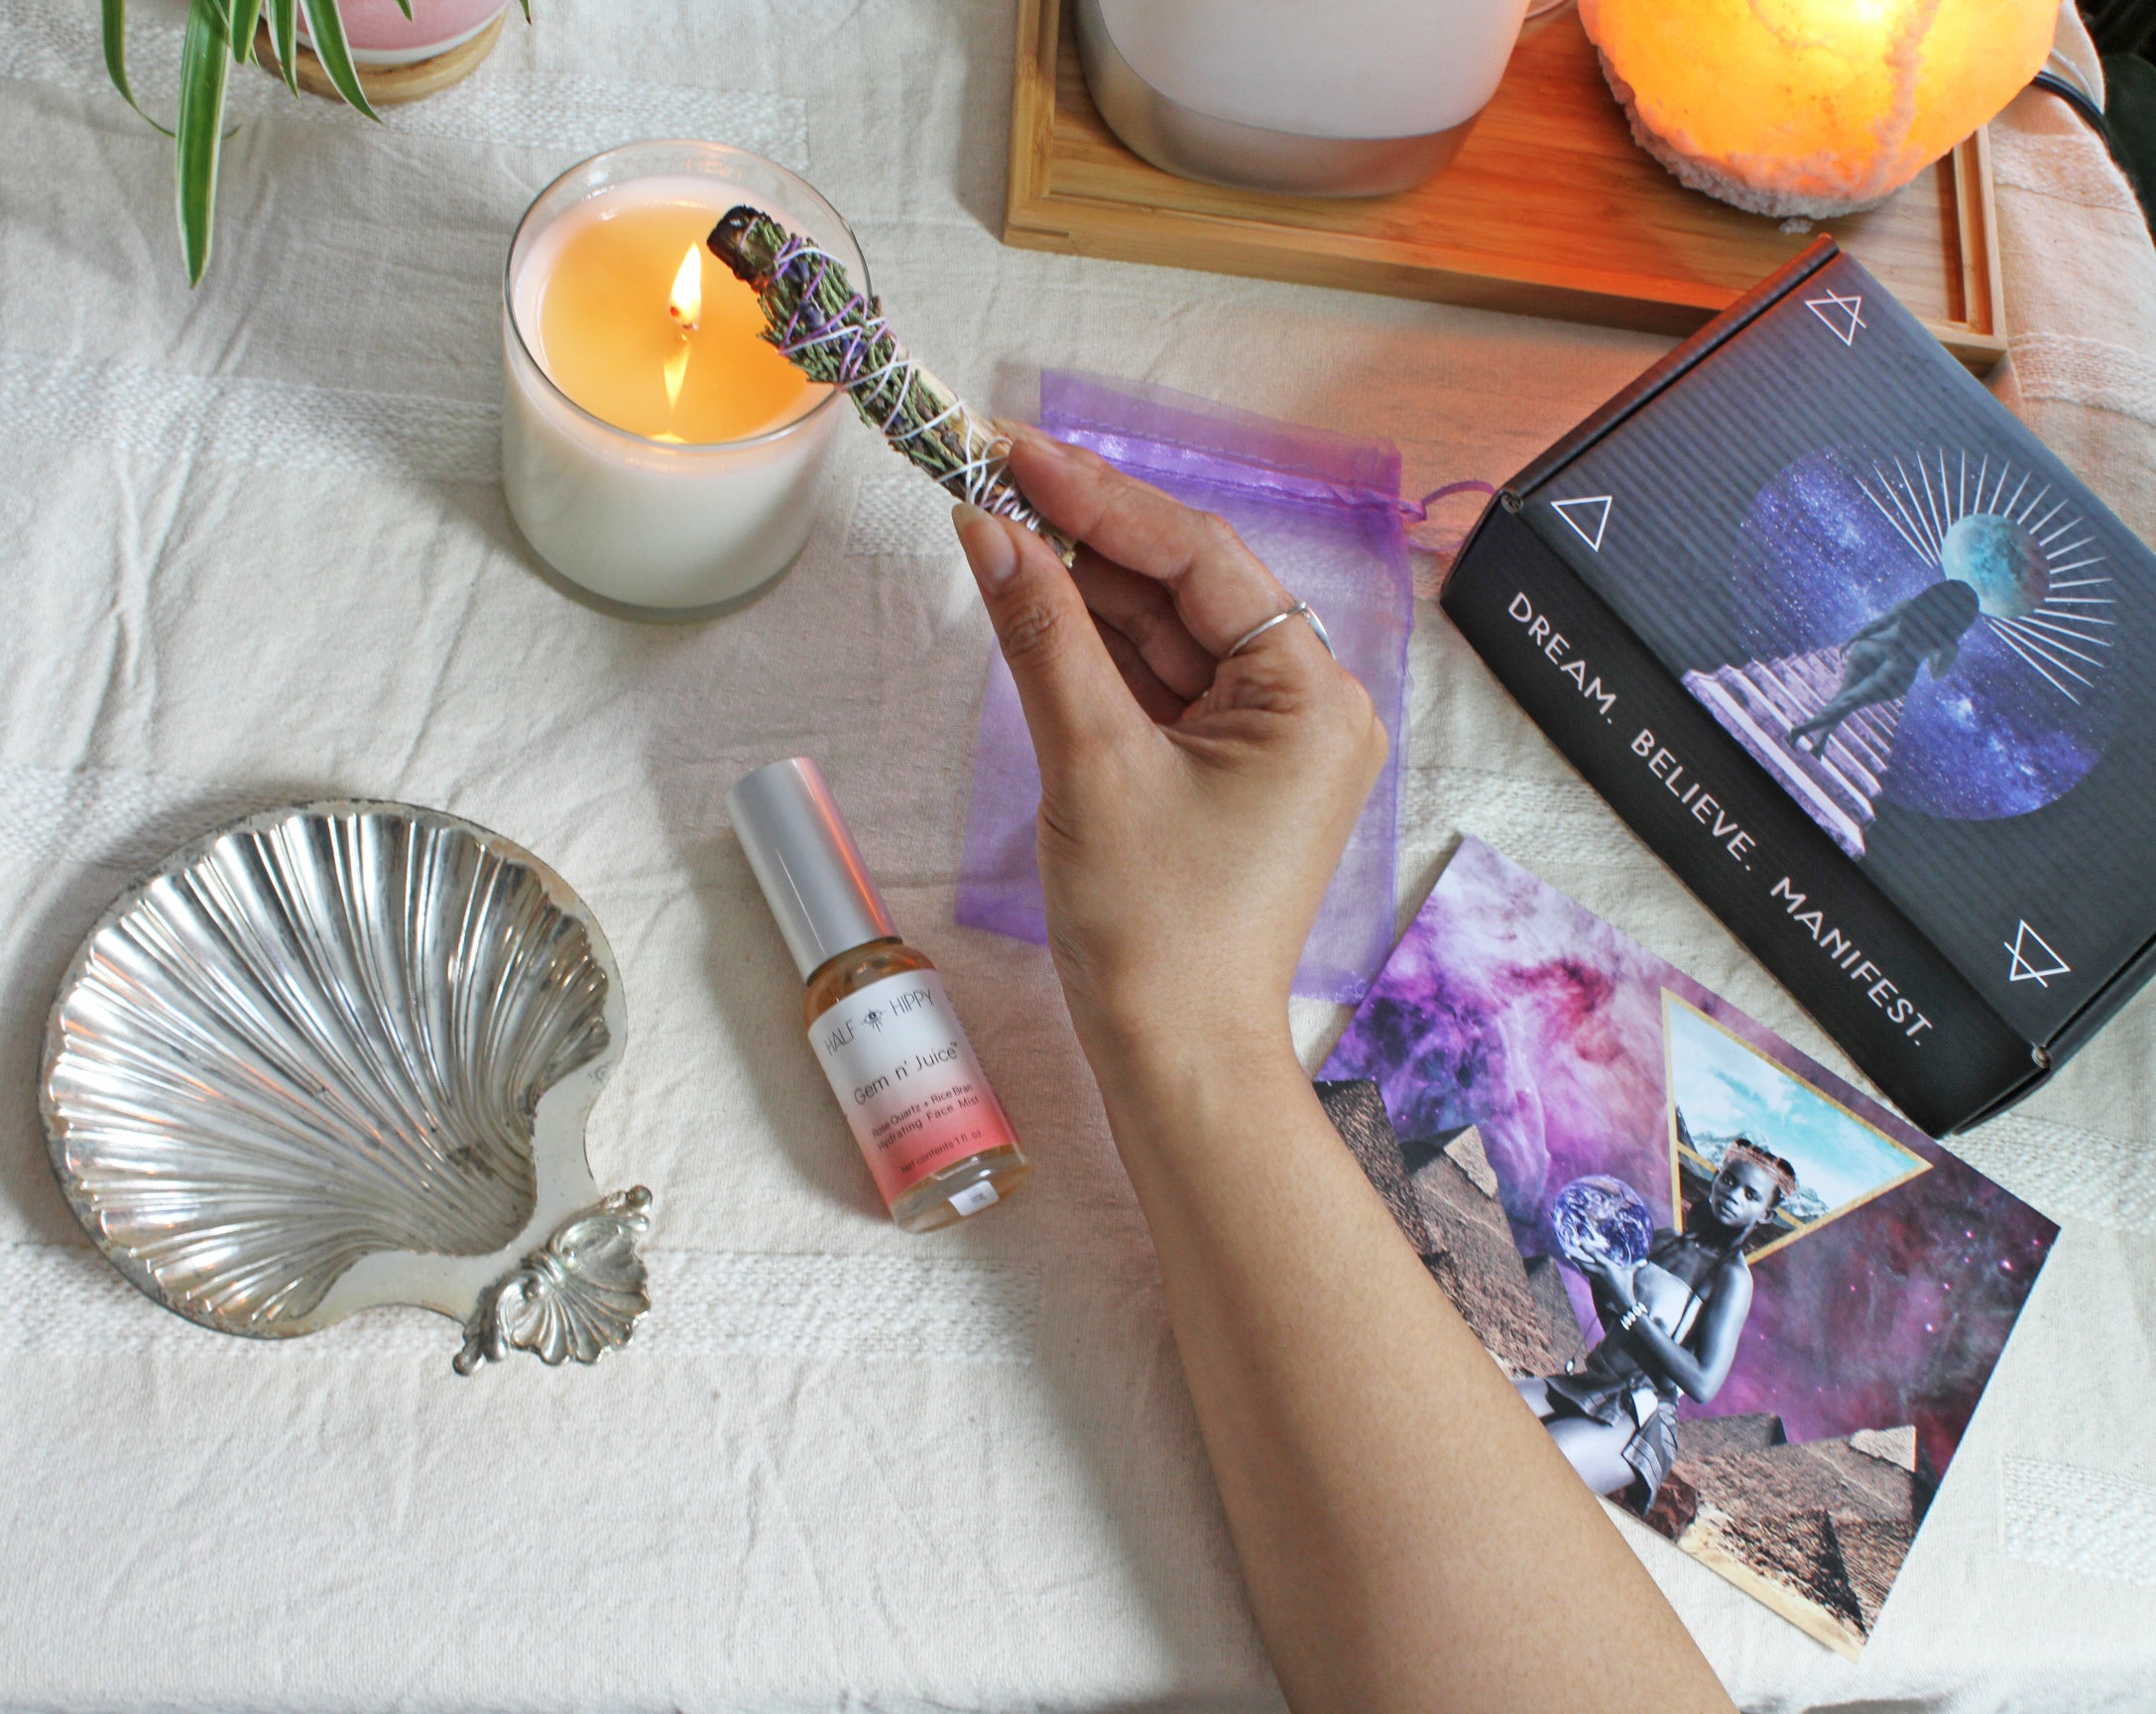 MANIFEST YOUR MAGICK RITUAL KIT